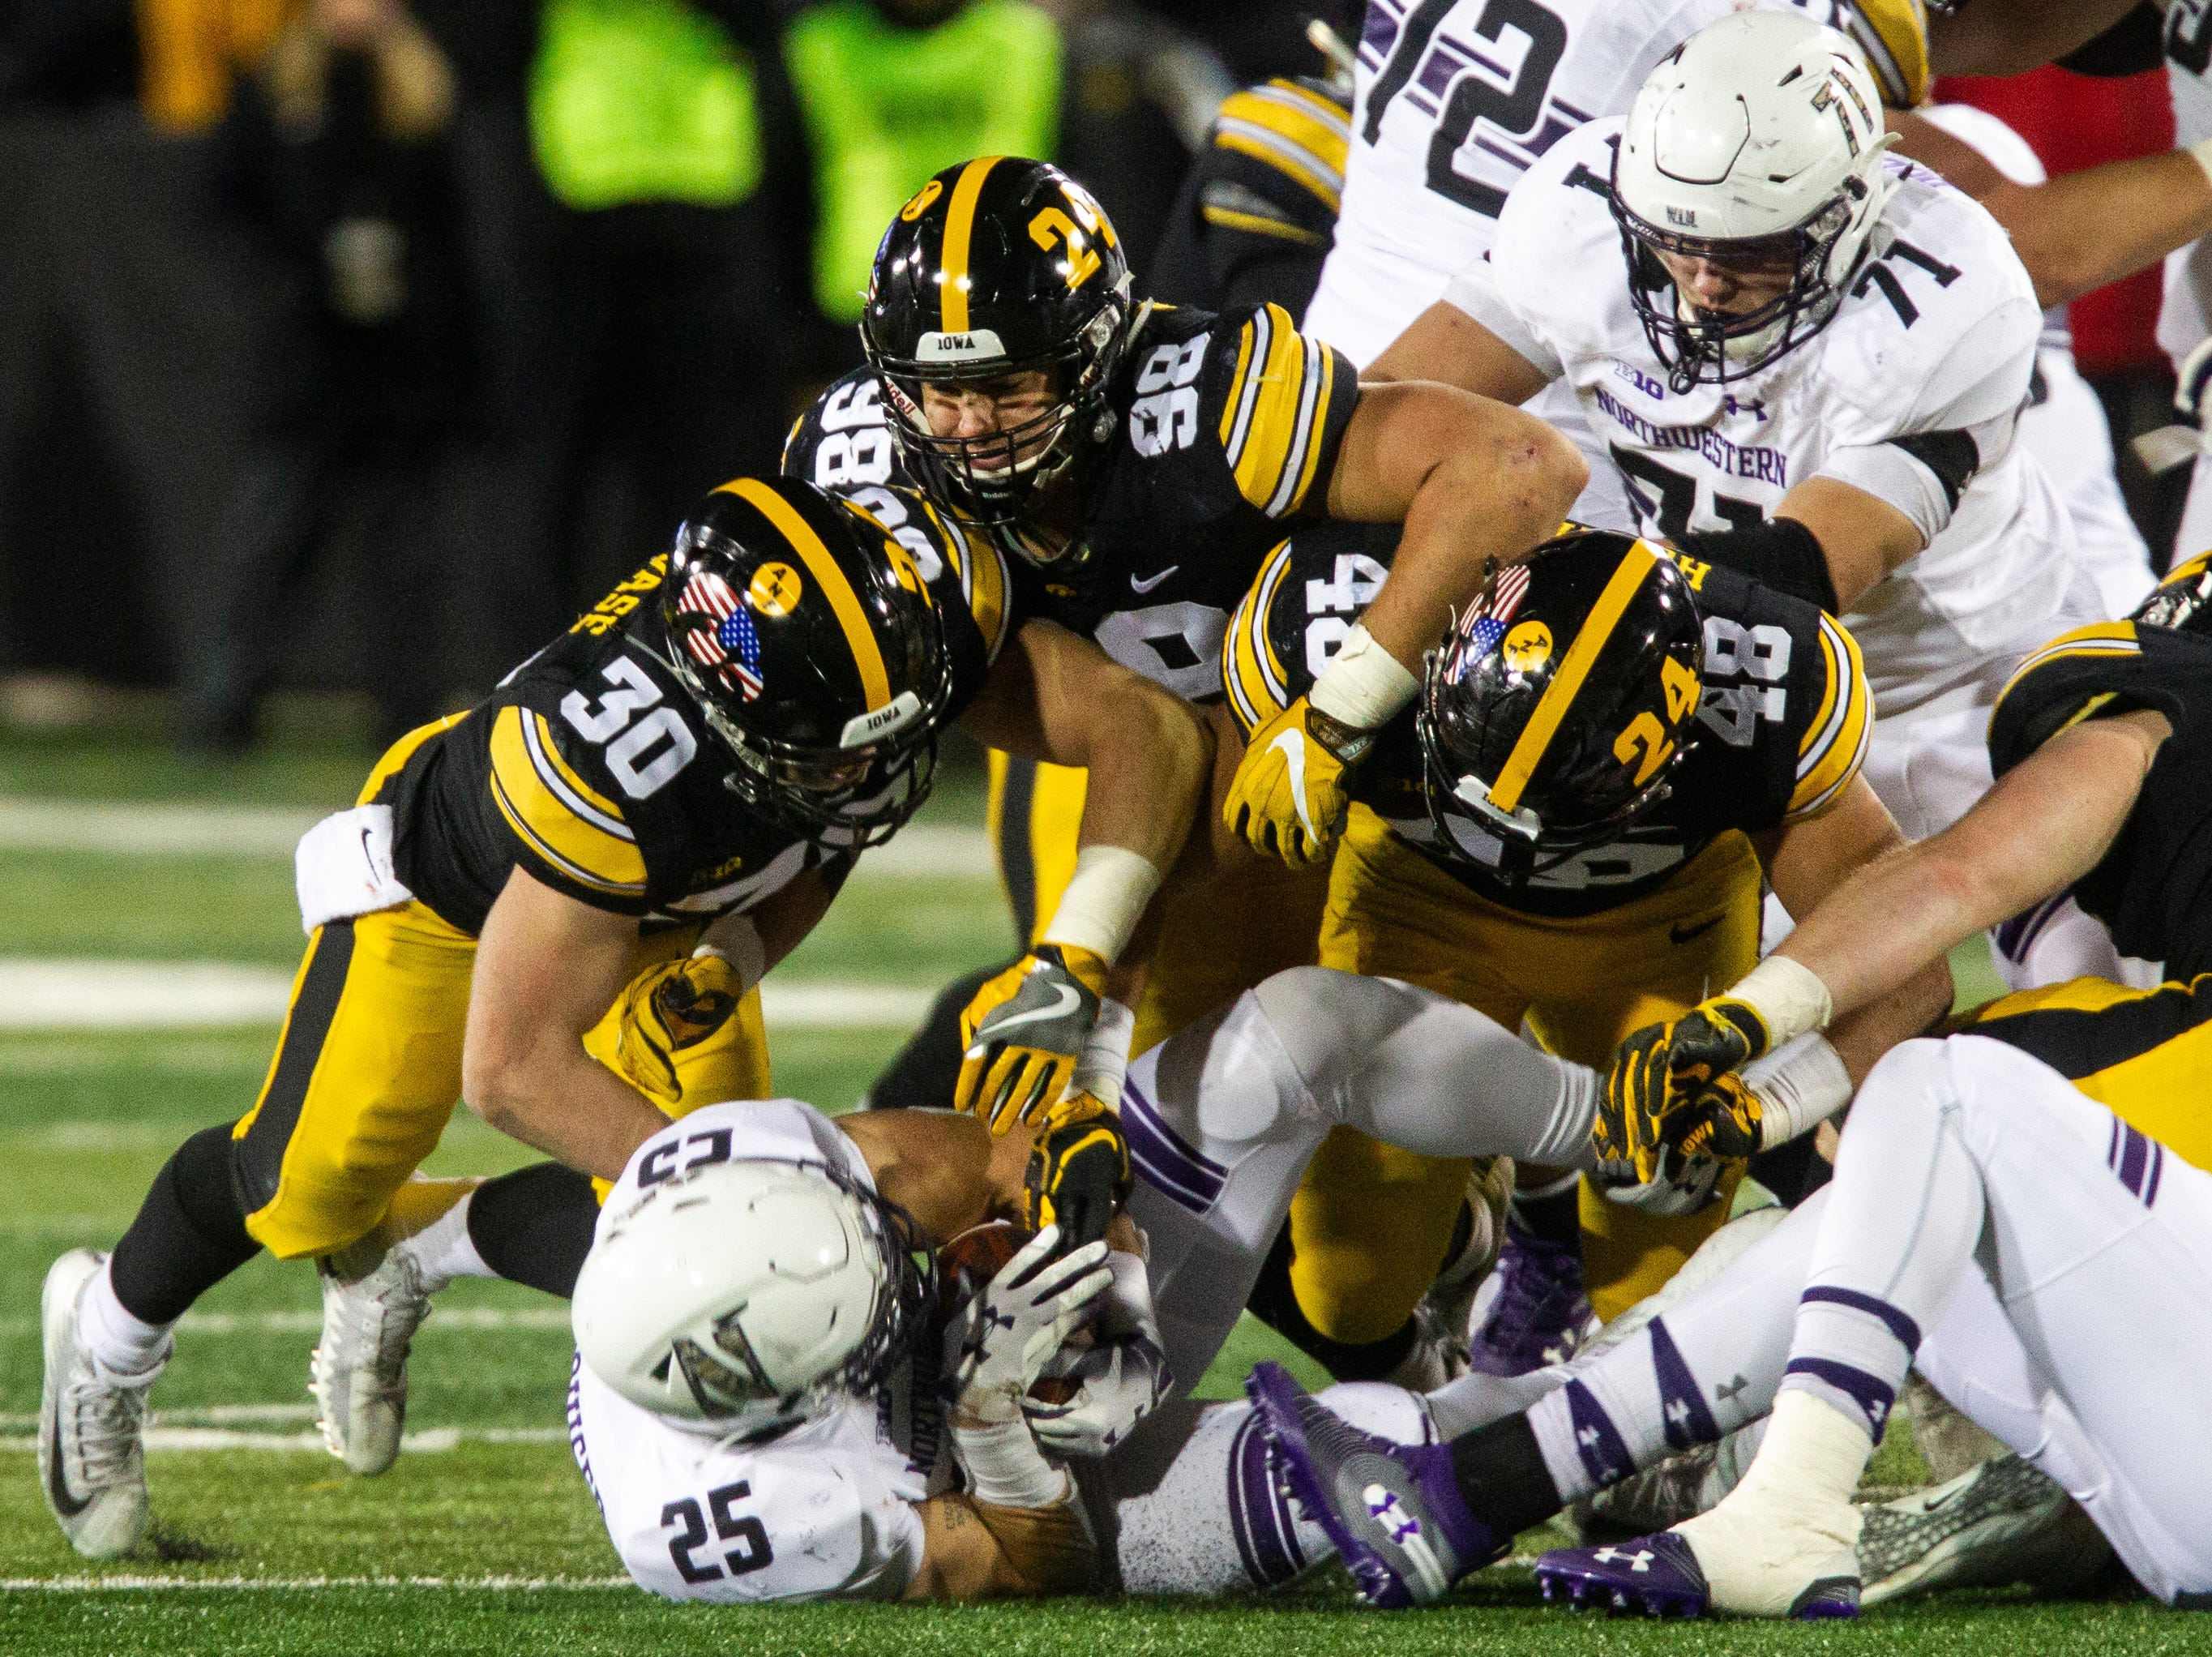 Iowa defensive back Jake Gervase (30) defensive end Anthony Nelson (98) linebacker Jack Hockaday (48) tackle Northwestern's Isaiah Bowser (25) during a Big Ten Conference football game on Saturday, Nov. 10, 2018, at Kinnick Stadium in Iowa City.